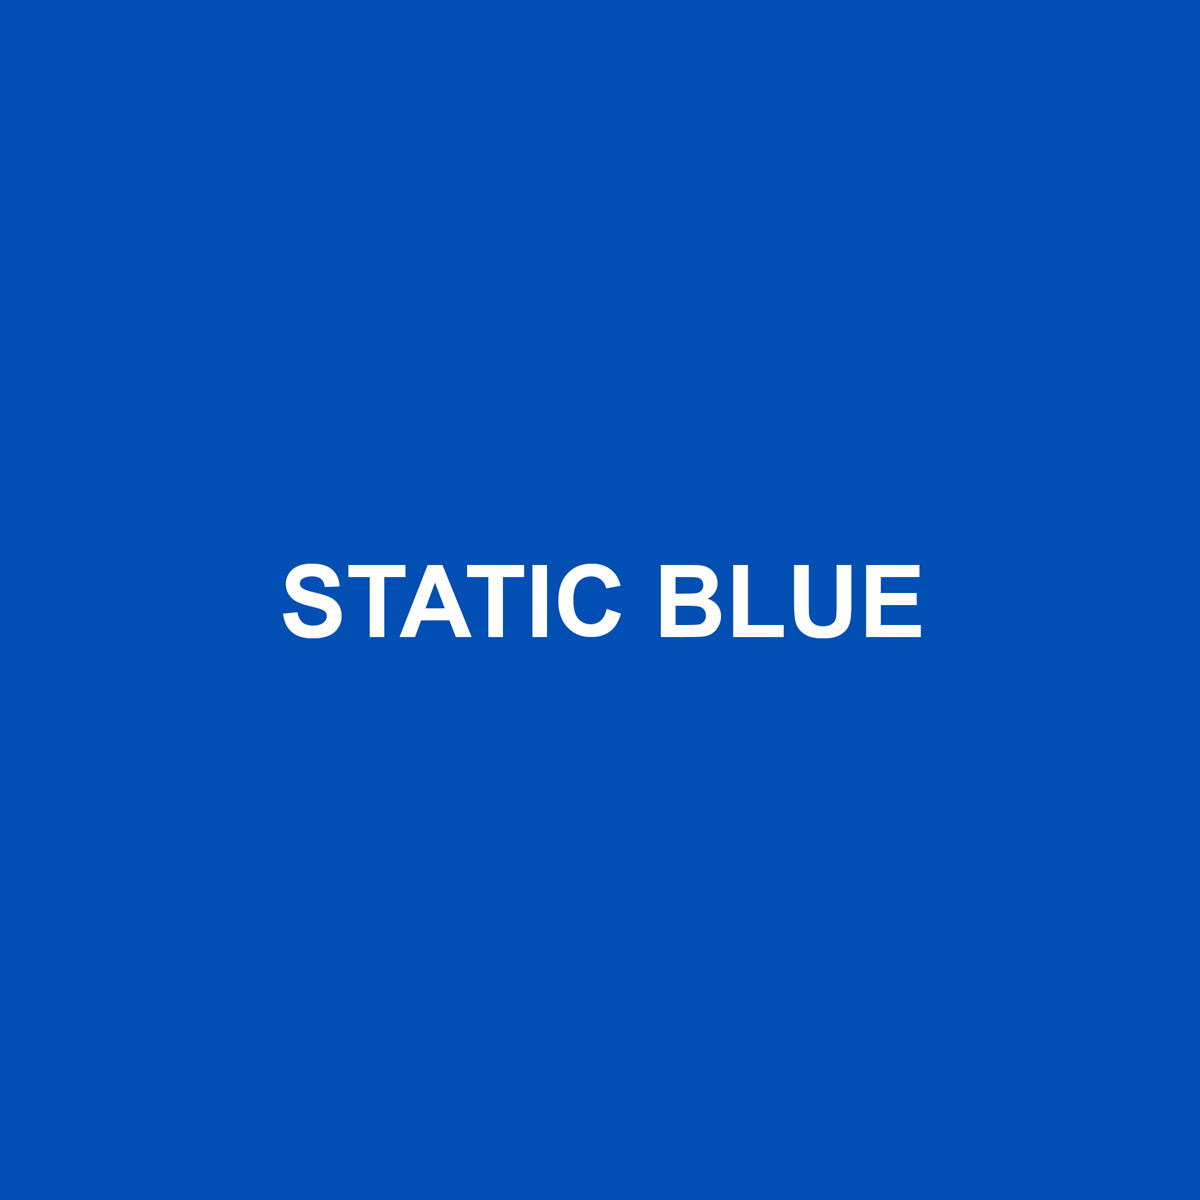 STATIC-BLUE_#ATHLETICUNION.jpg